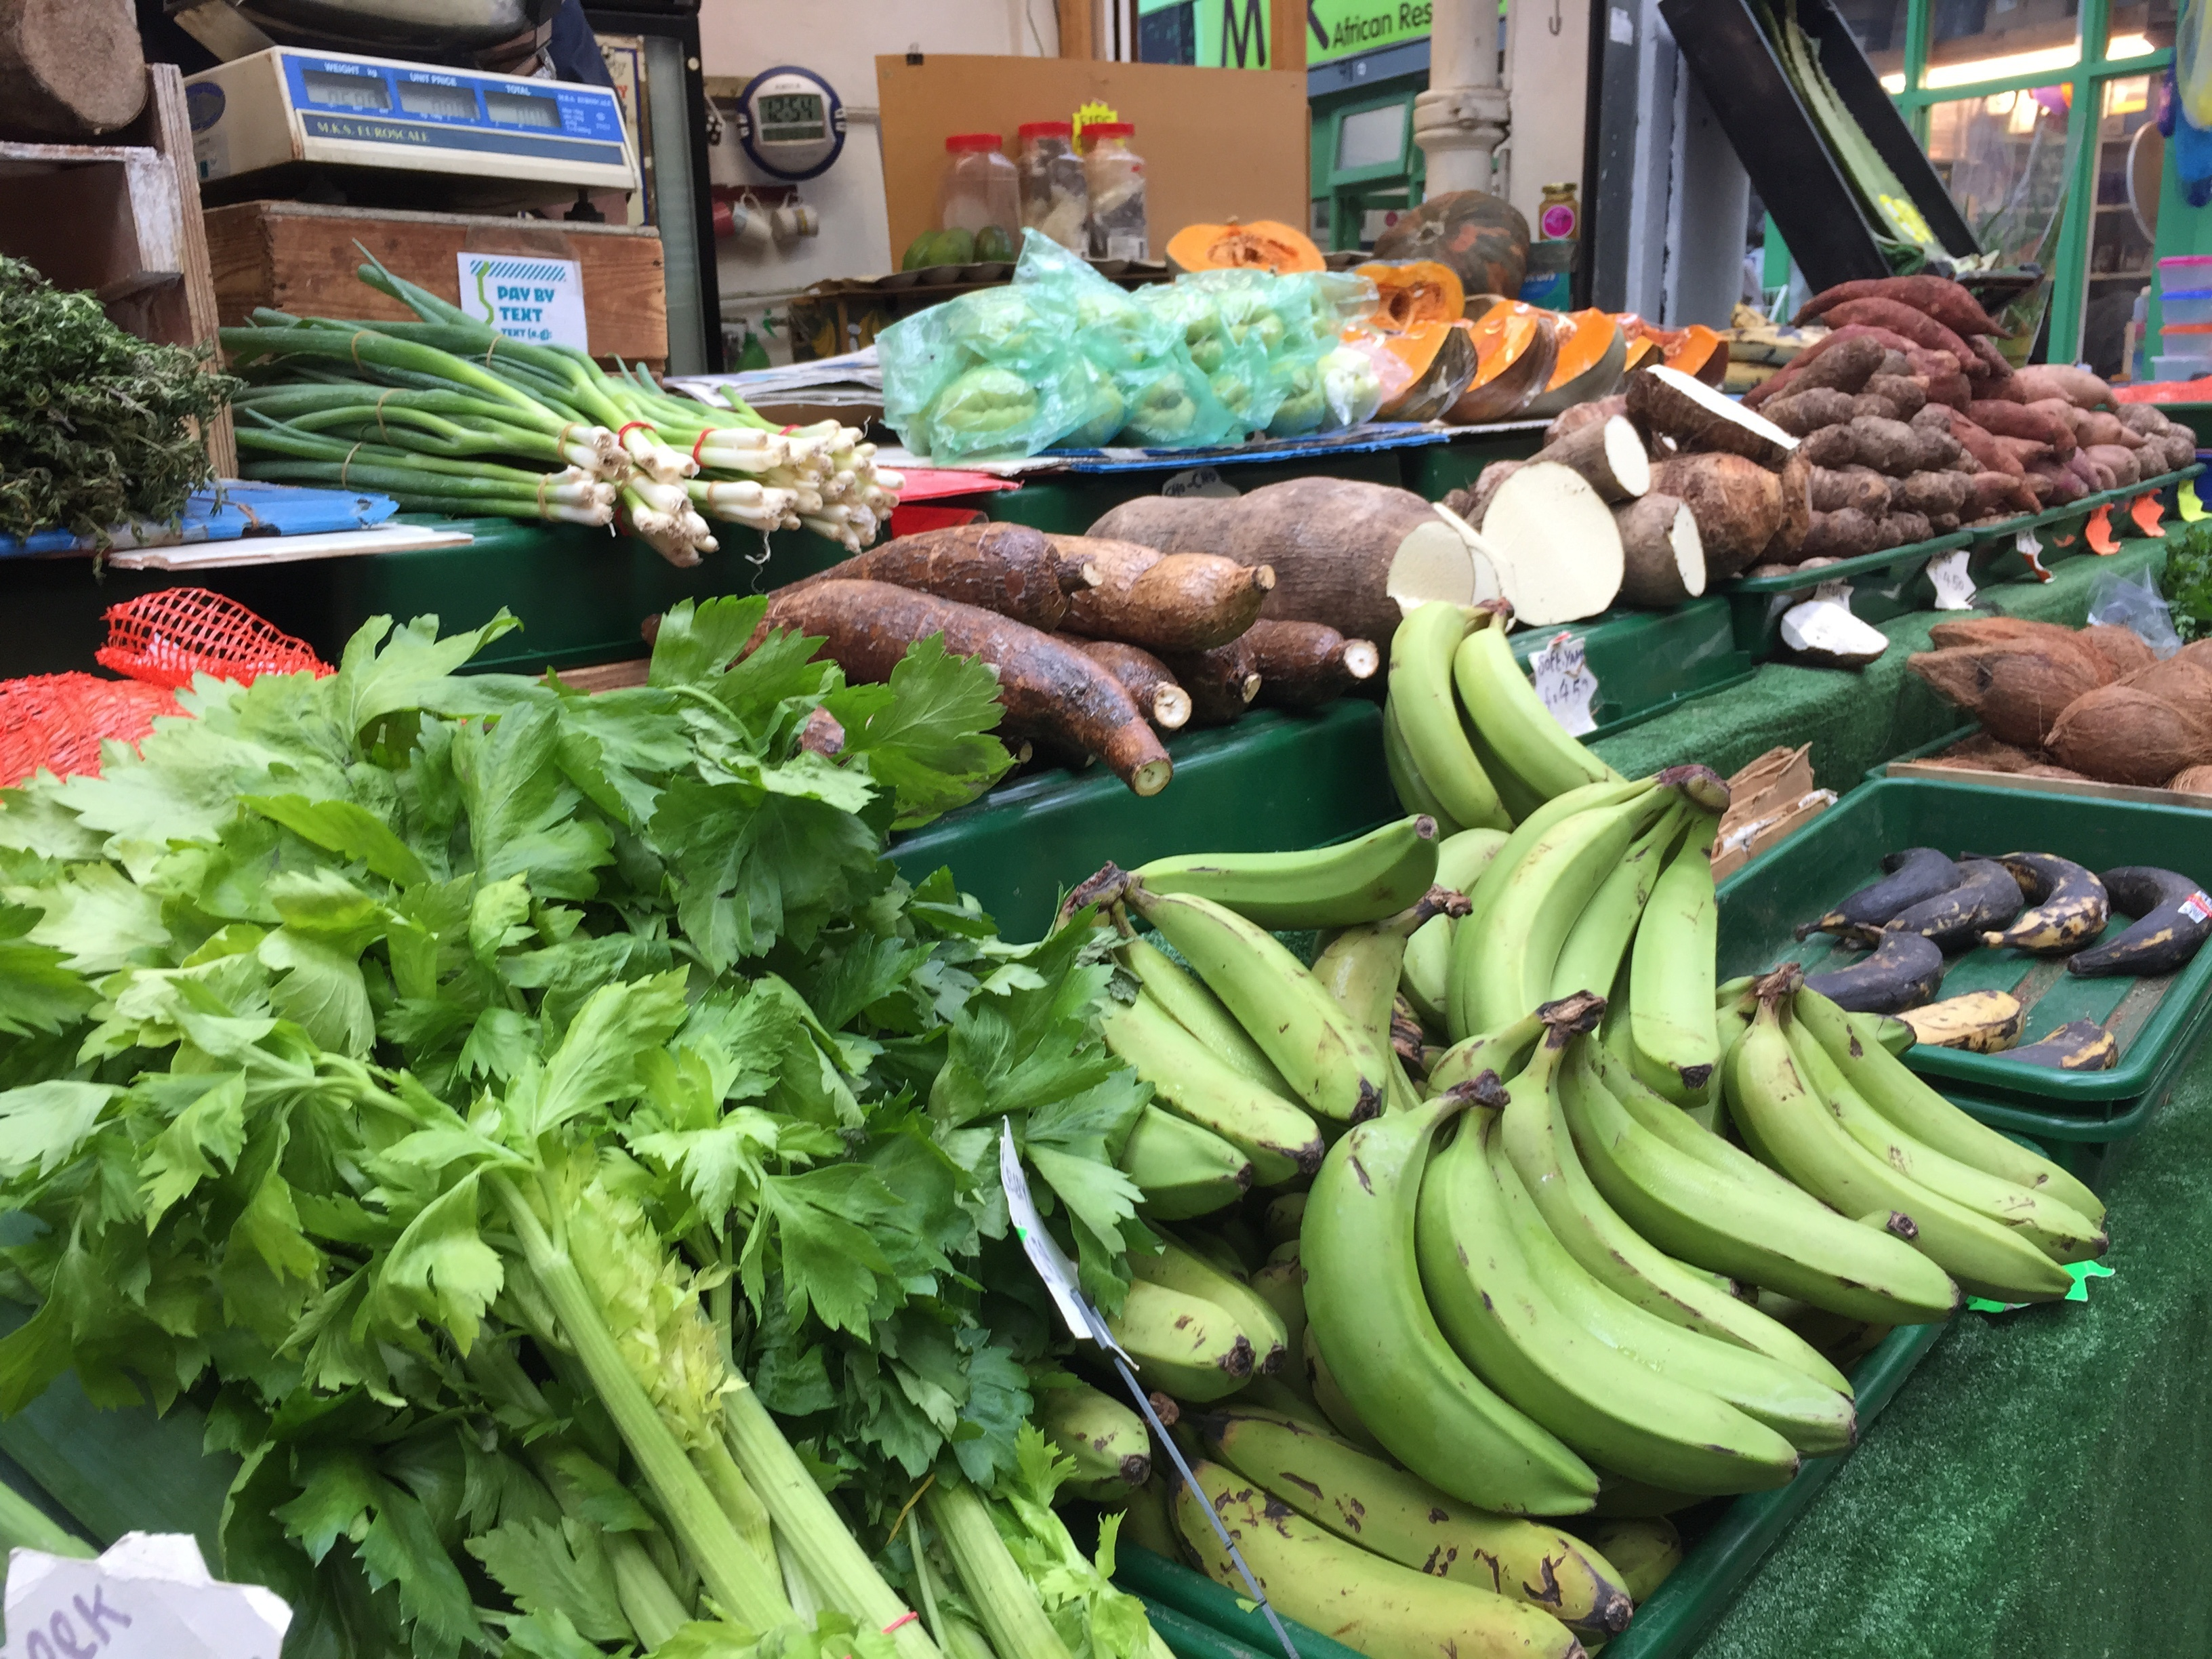 CAPAStudyAbroad_London_Summer2015_From_Sawyer_Coffey_-_veggies_in_Brixton_Market